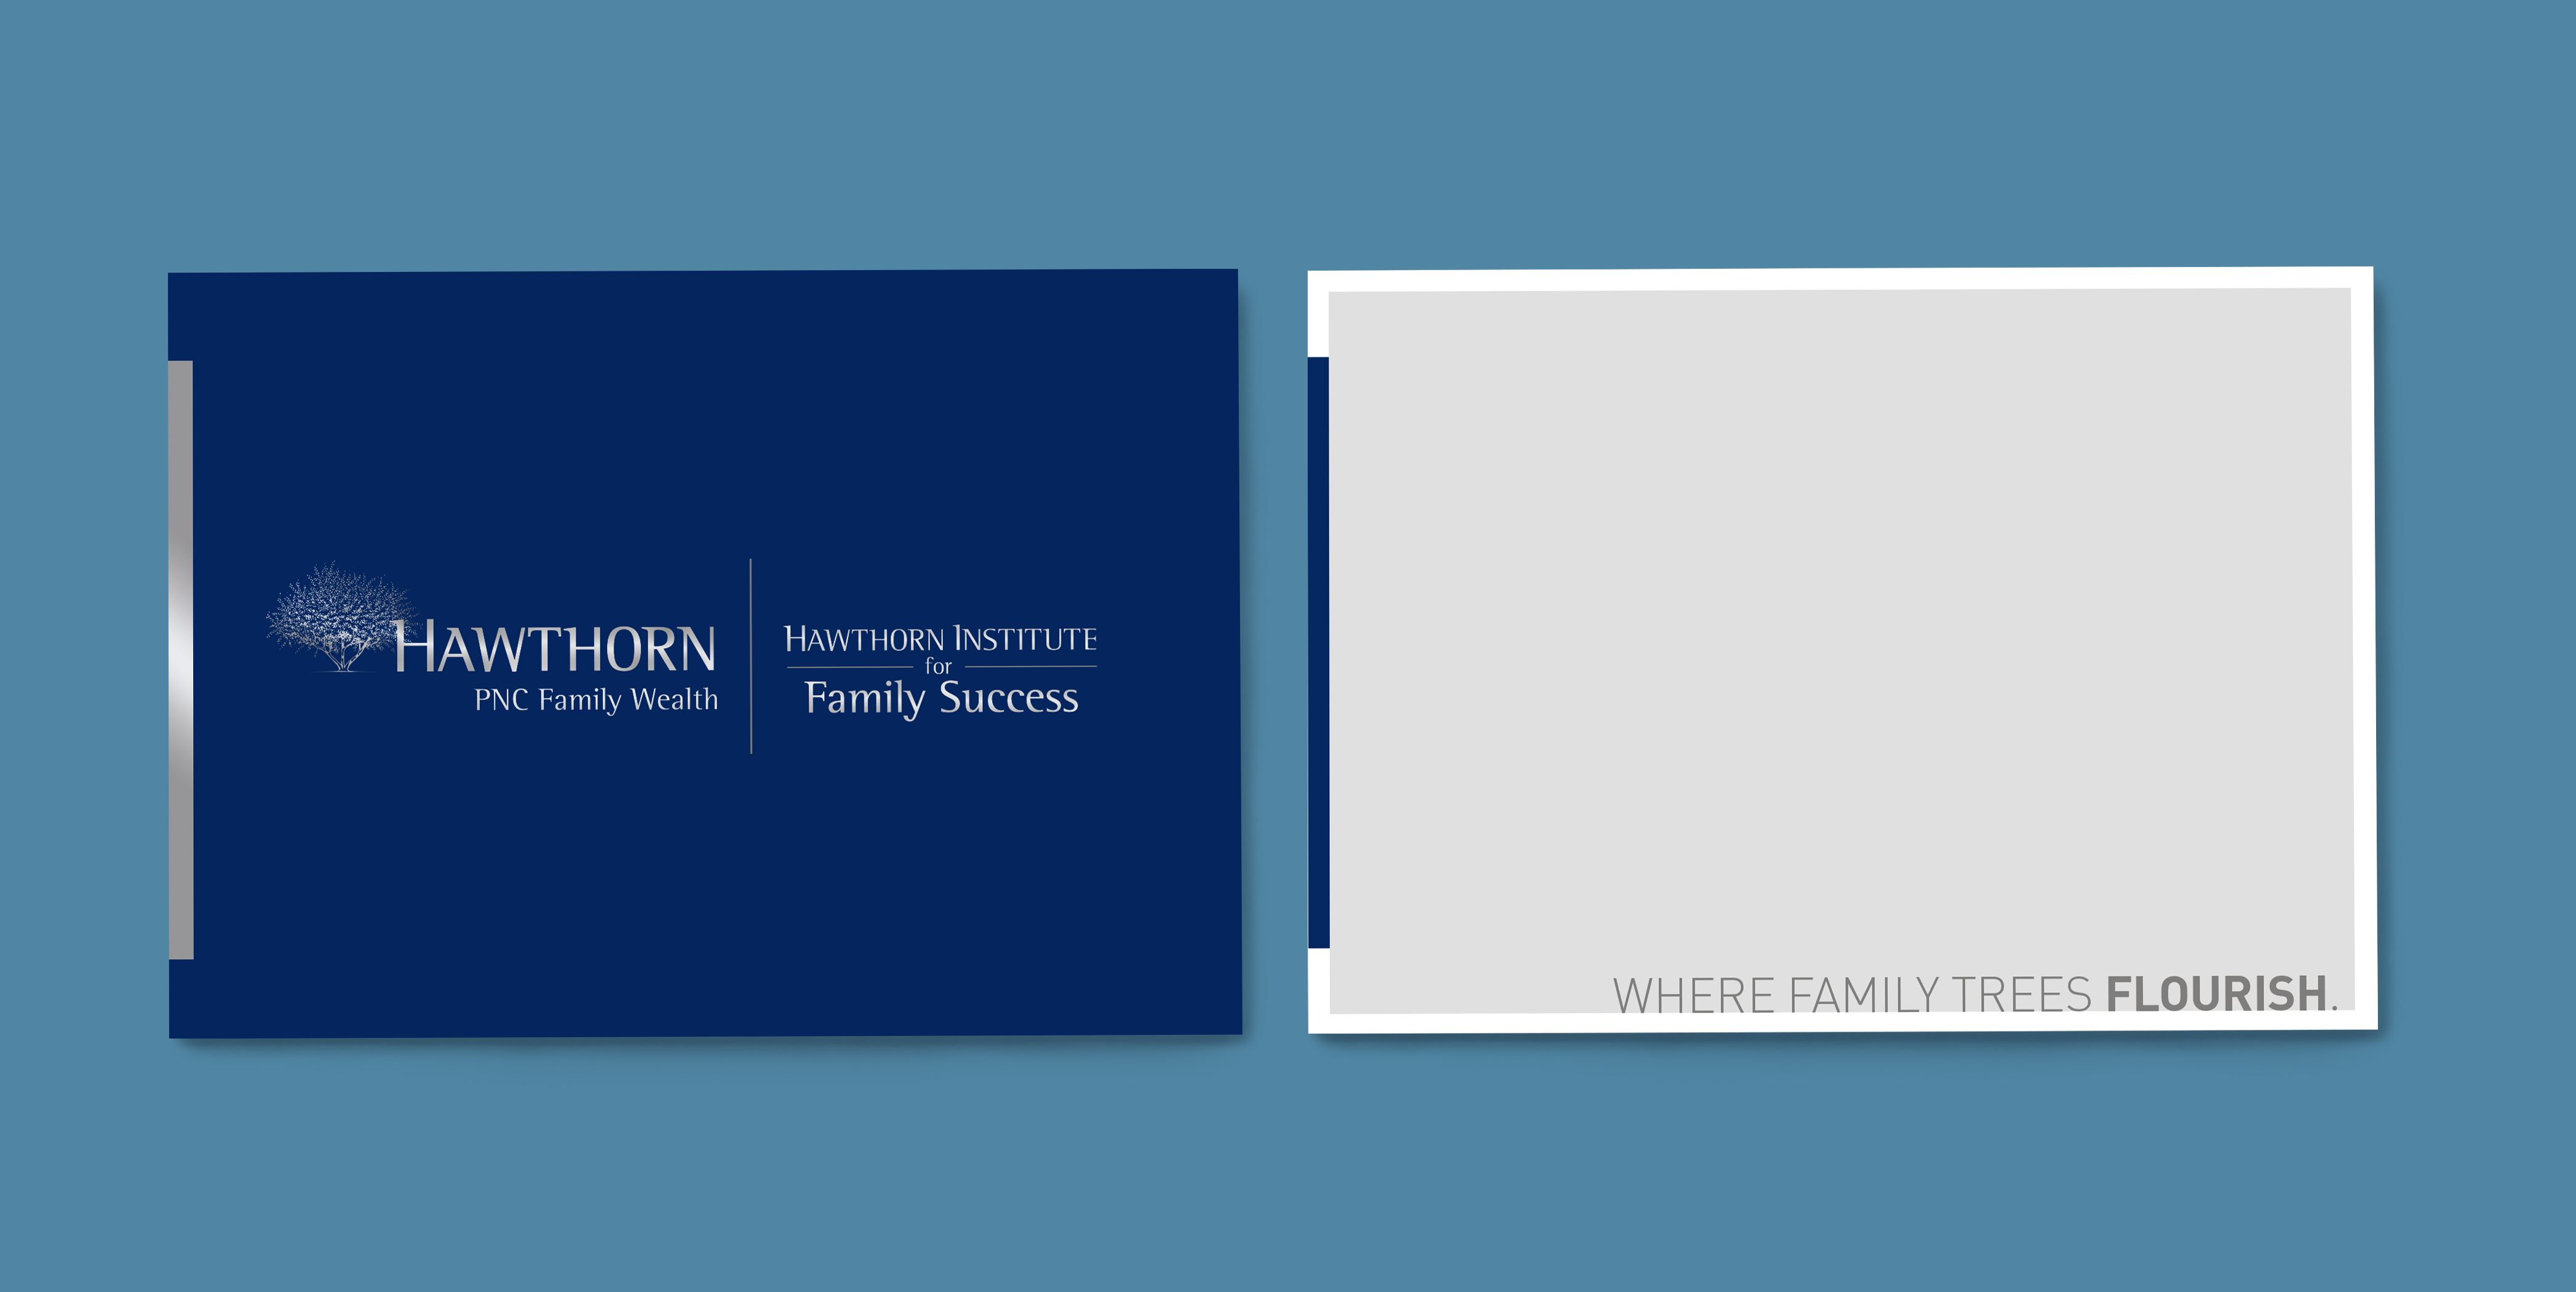 """A mockup of the front and back of a notecard over a blue background. The front of the card is dark blue with a vertical bar on the left in silver foil. The Hawthorn Institute for Family Success logo lockup is in the center of the card, also in silver foil. On the back, there is a light gray background with a  white border and the same vertical bar on the lefthand side - but this time, in dark blue. The tagline """"Where family trees flourish"""" is written in dark gray in the bottom righthand corner."""